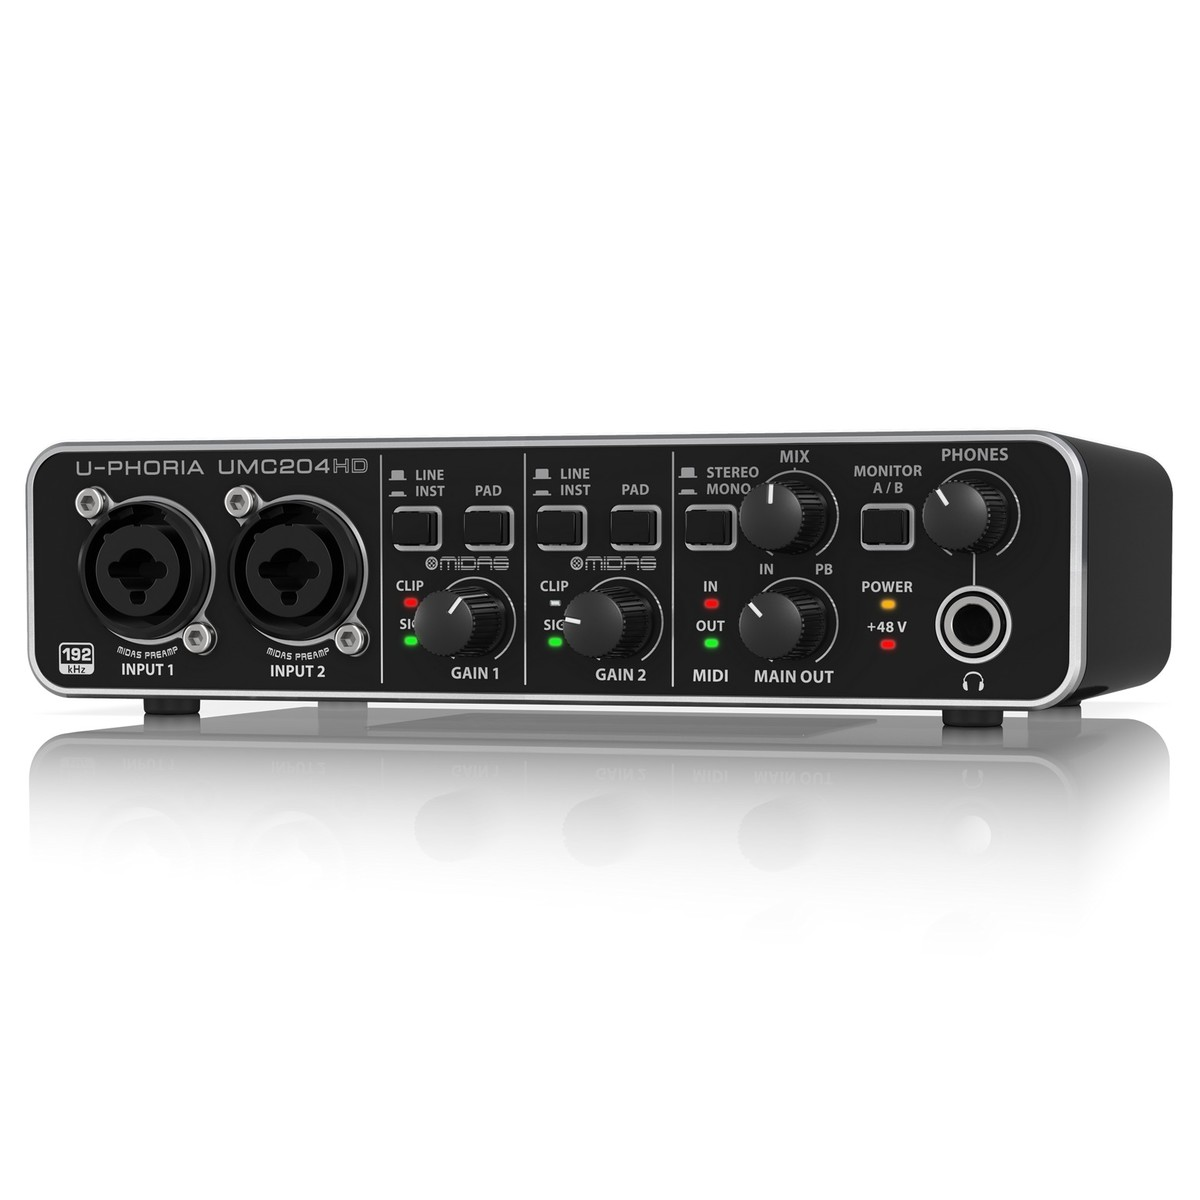 behringer u phoria umc204hd usb audio interface b stock at gear4music. Black Bedroom Furniture Sets. Home Design Ideas